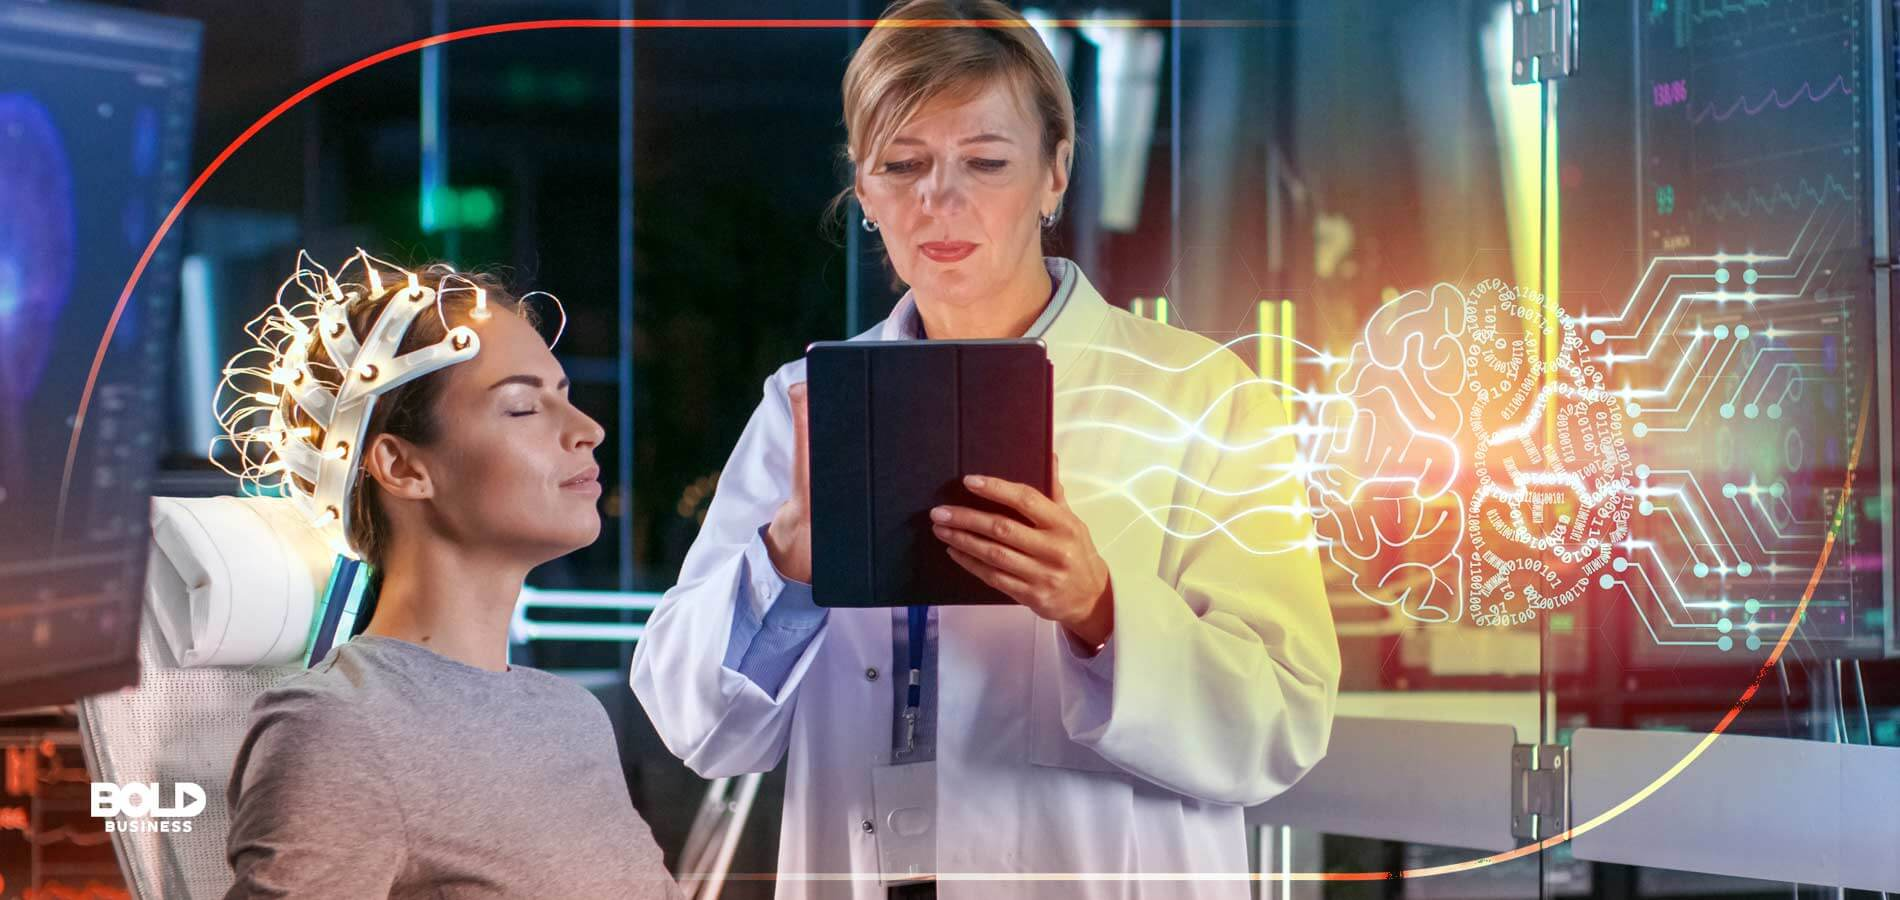 Stroke victims are benefiting from AI in neuroscience.